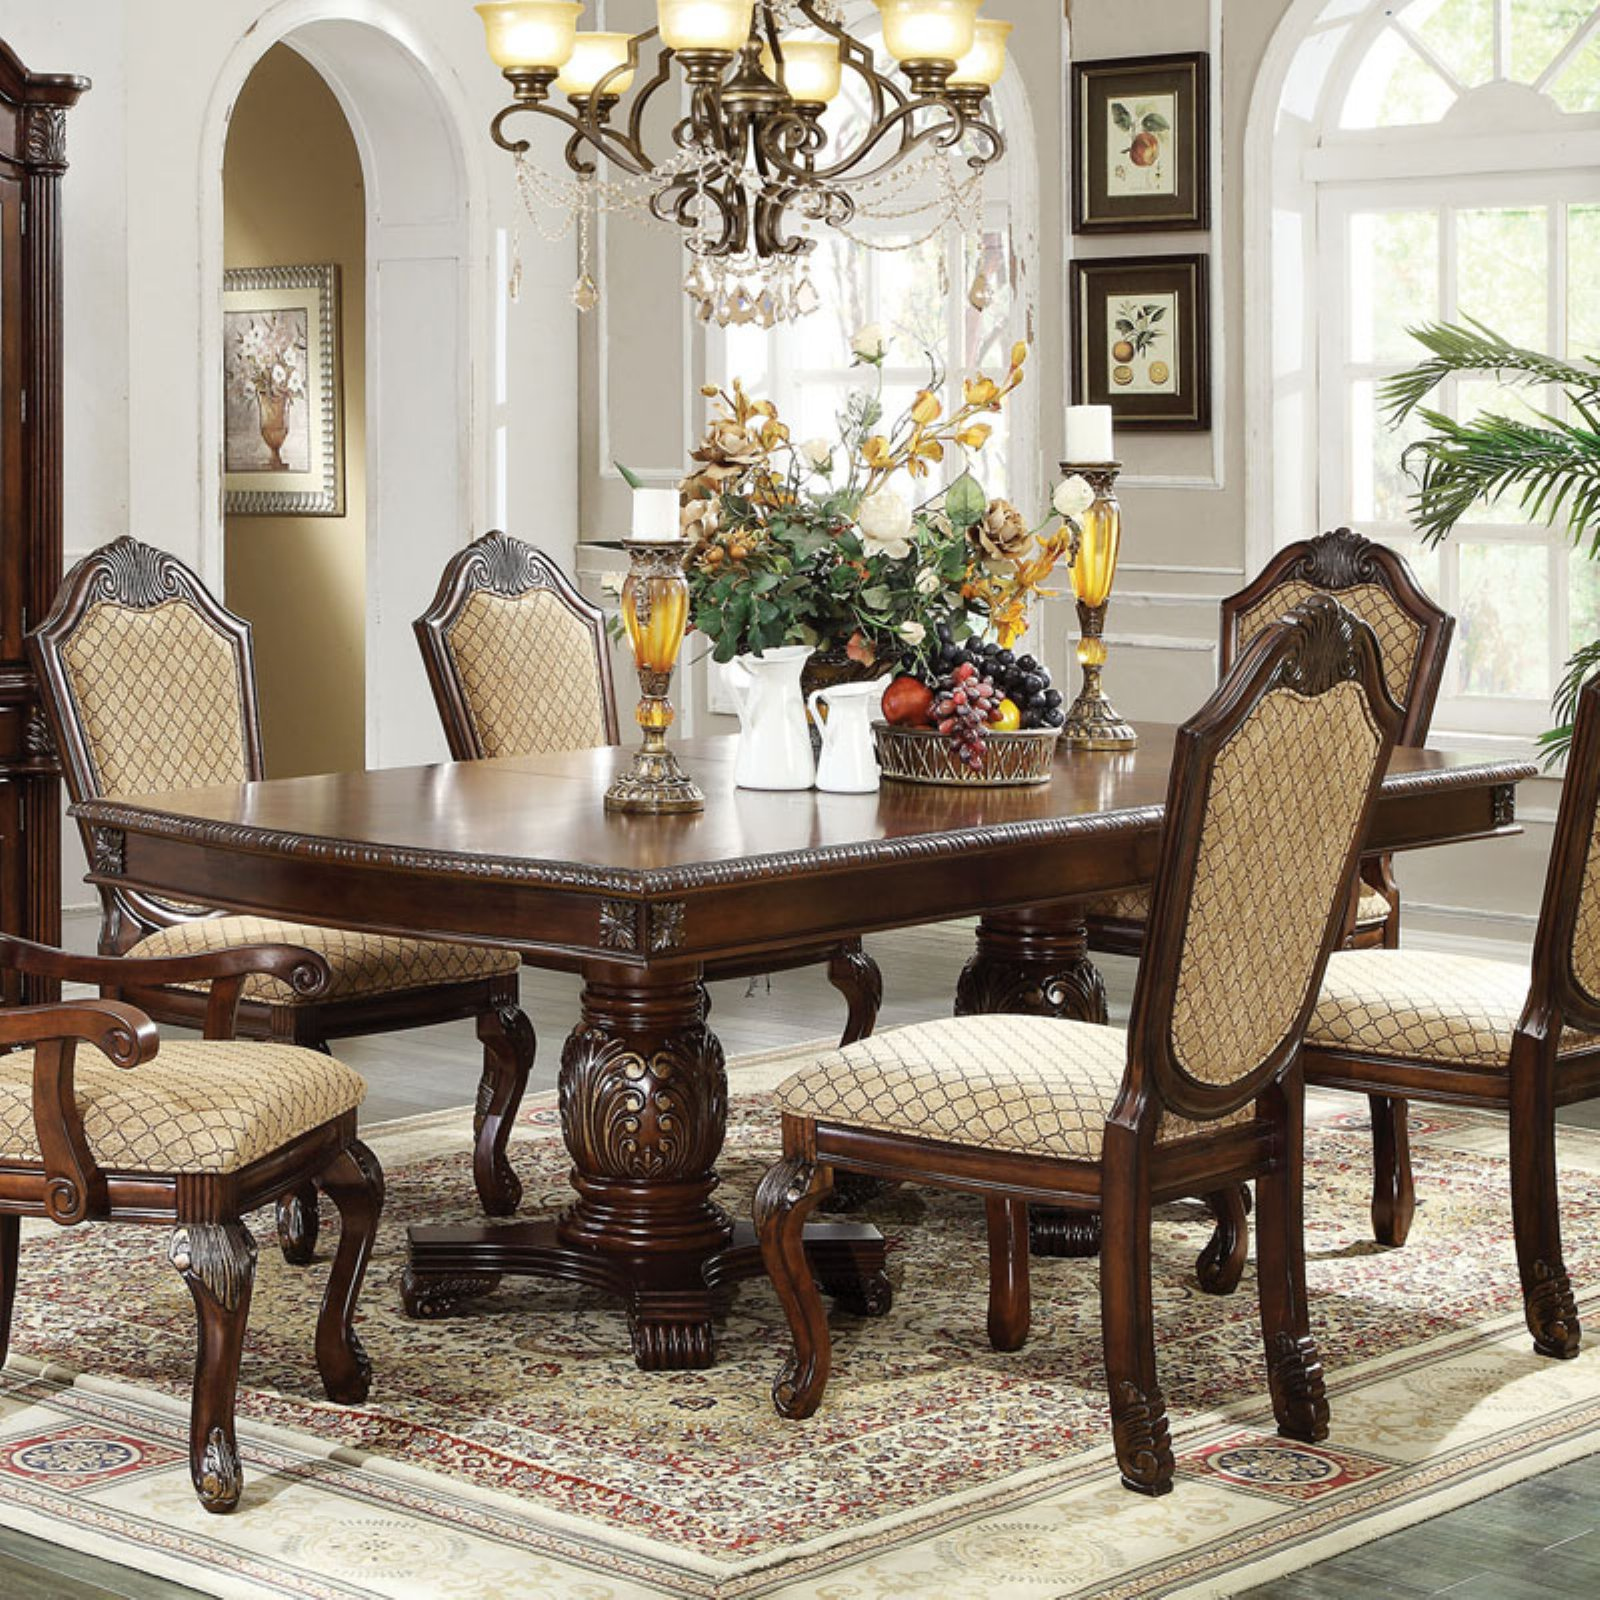 Acme Furniture Chateau De Ville Rectangular Dining Table